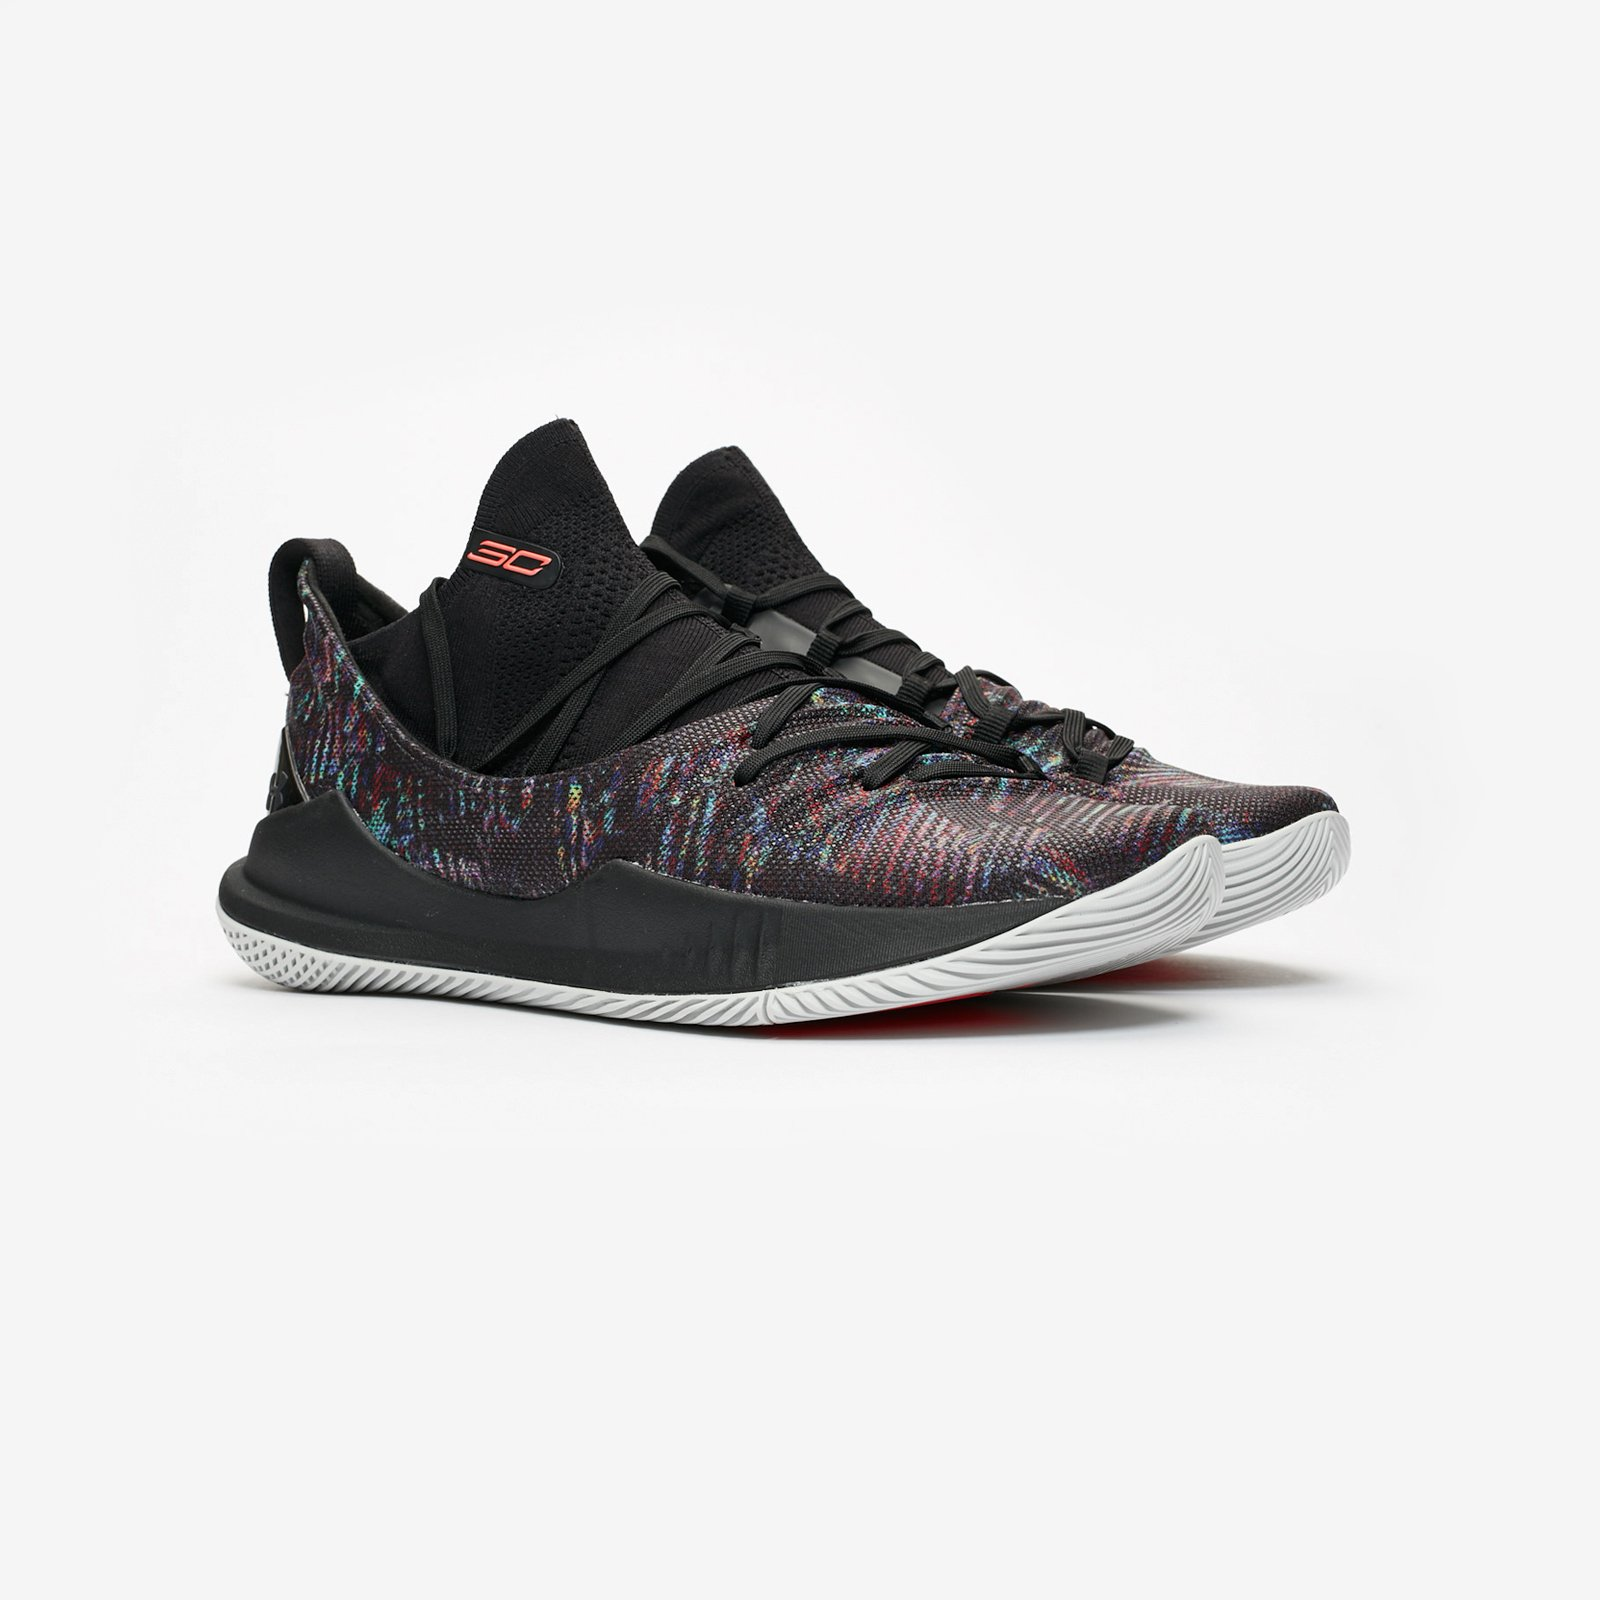 new arrival 33166 72df3 under armour curry 6 men 44